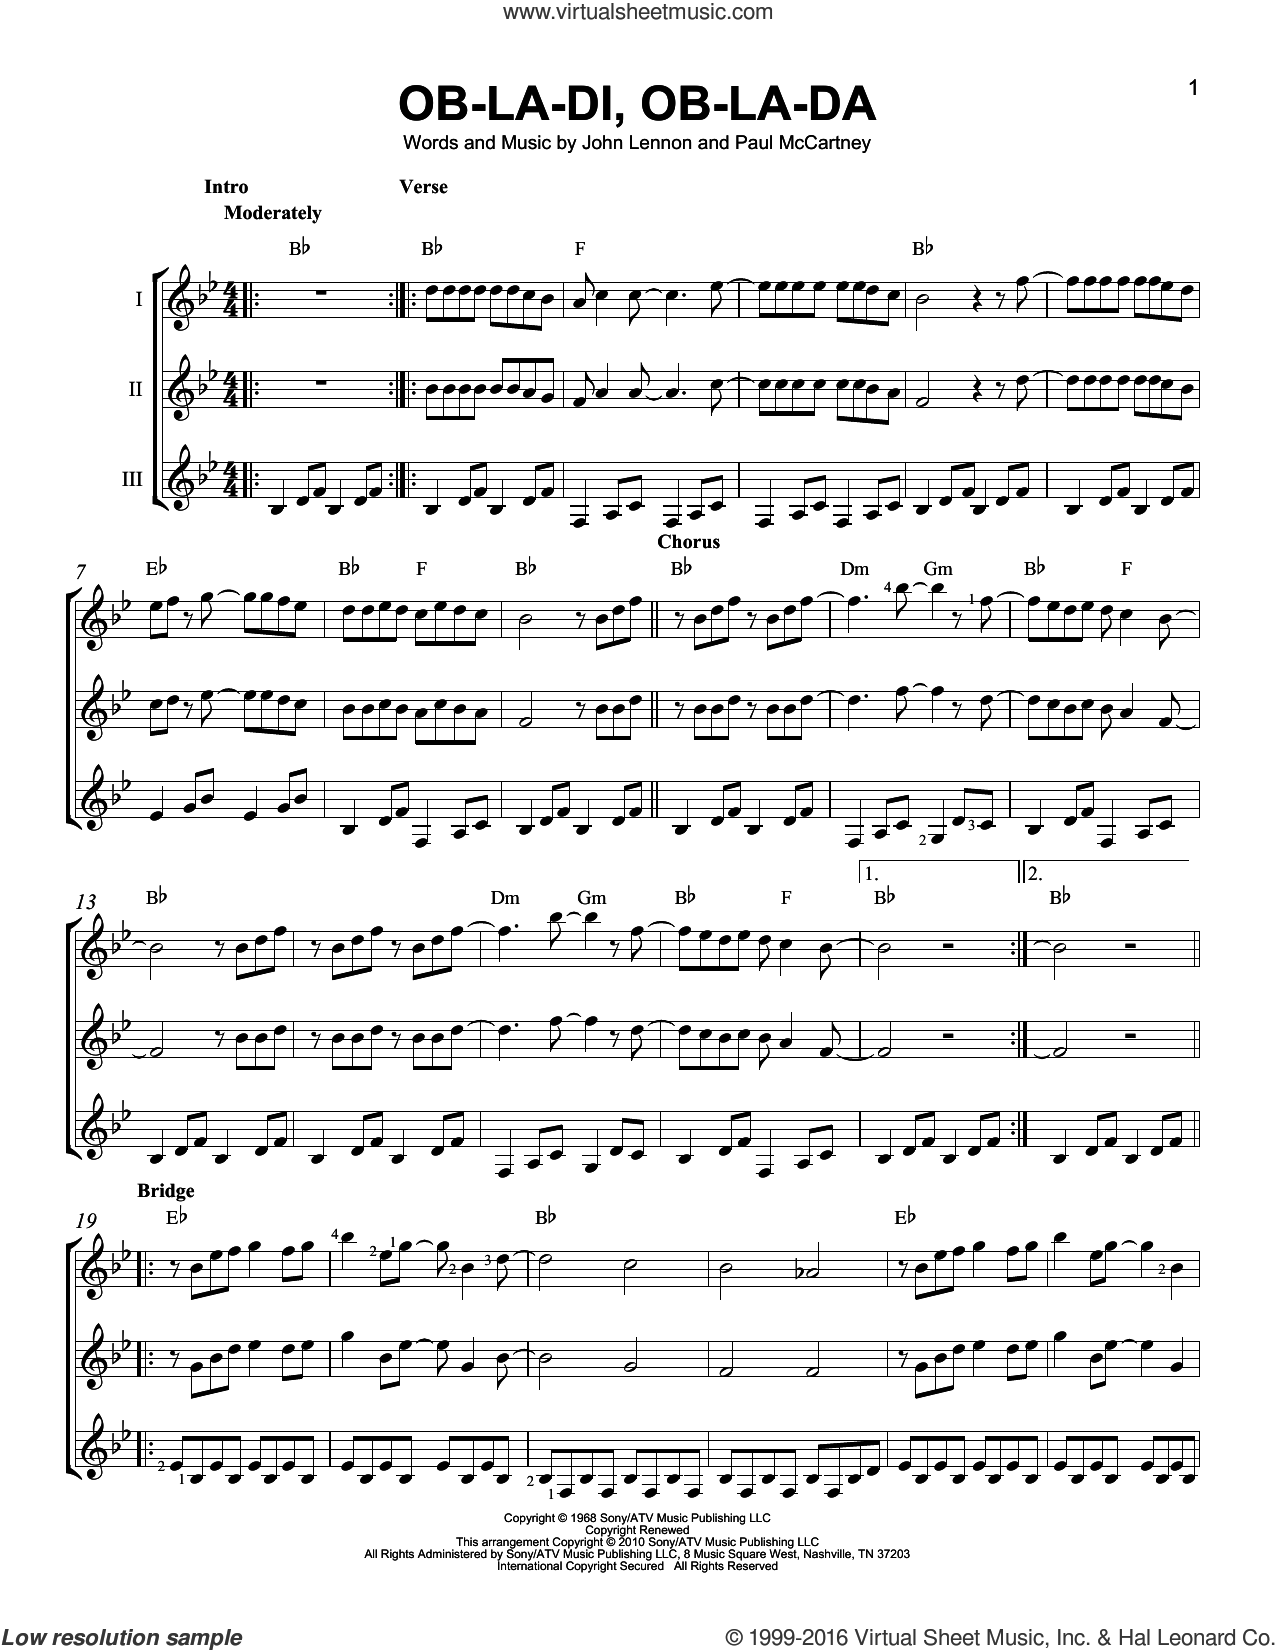 Ob-La-Di, Ob-La-Da sheet music for guitar ensemble by The Beatles, John Lennon and Paul McCartney, intermediate